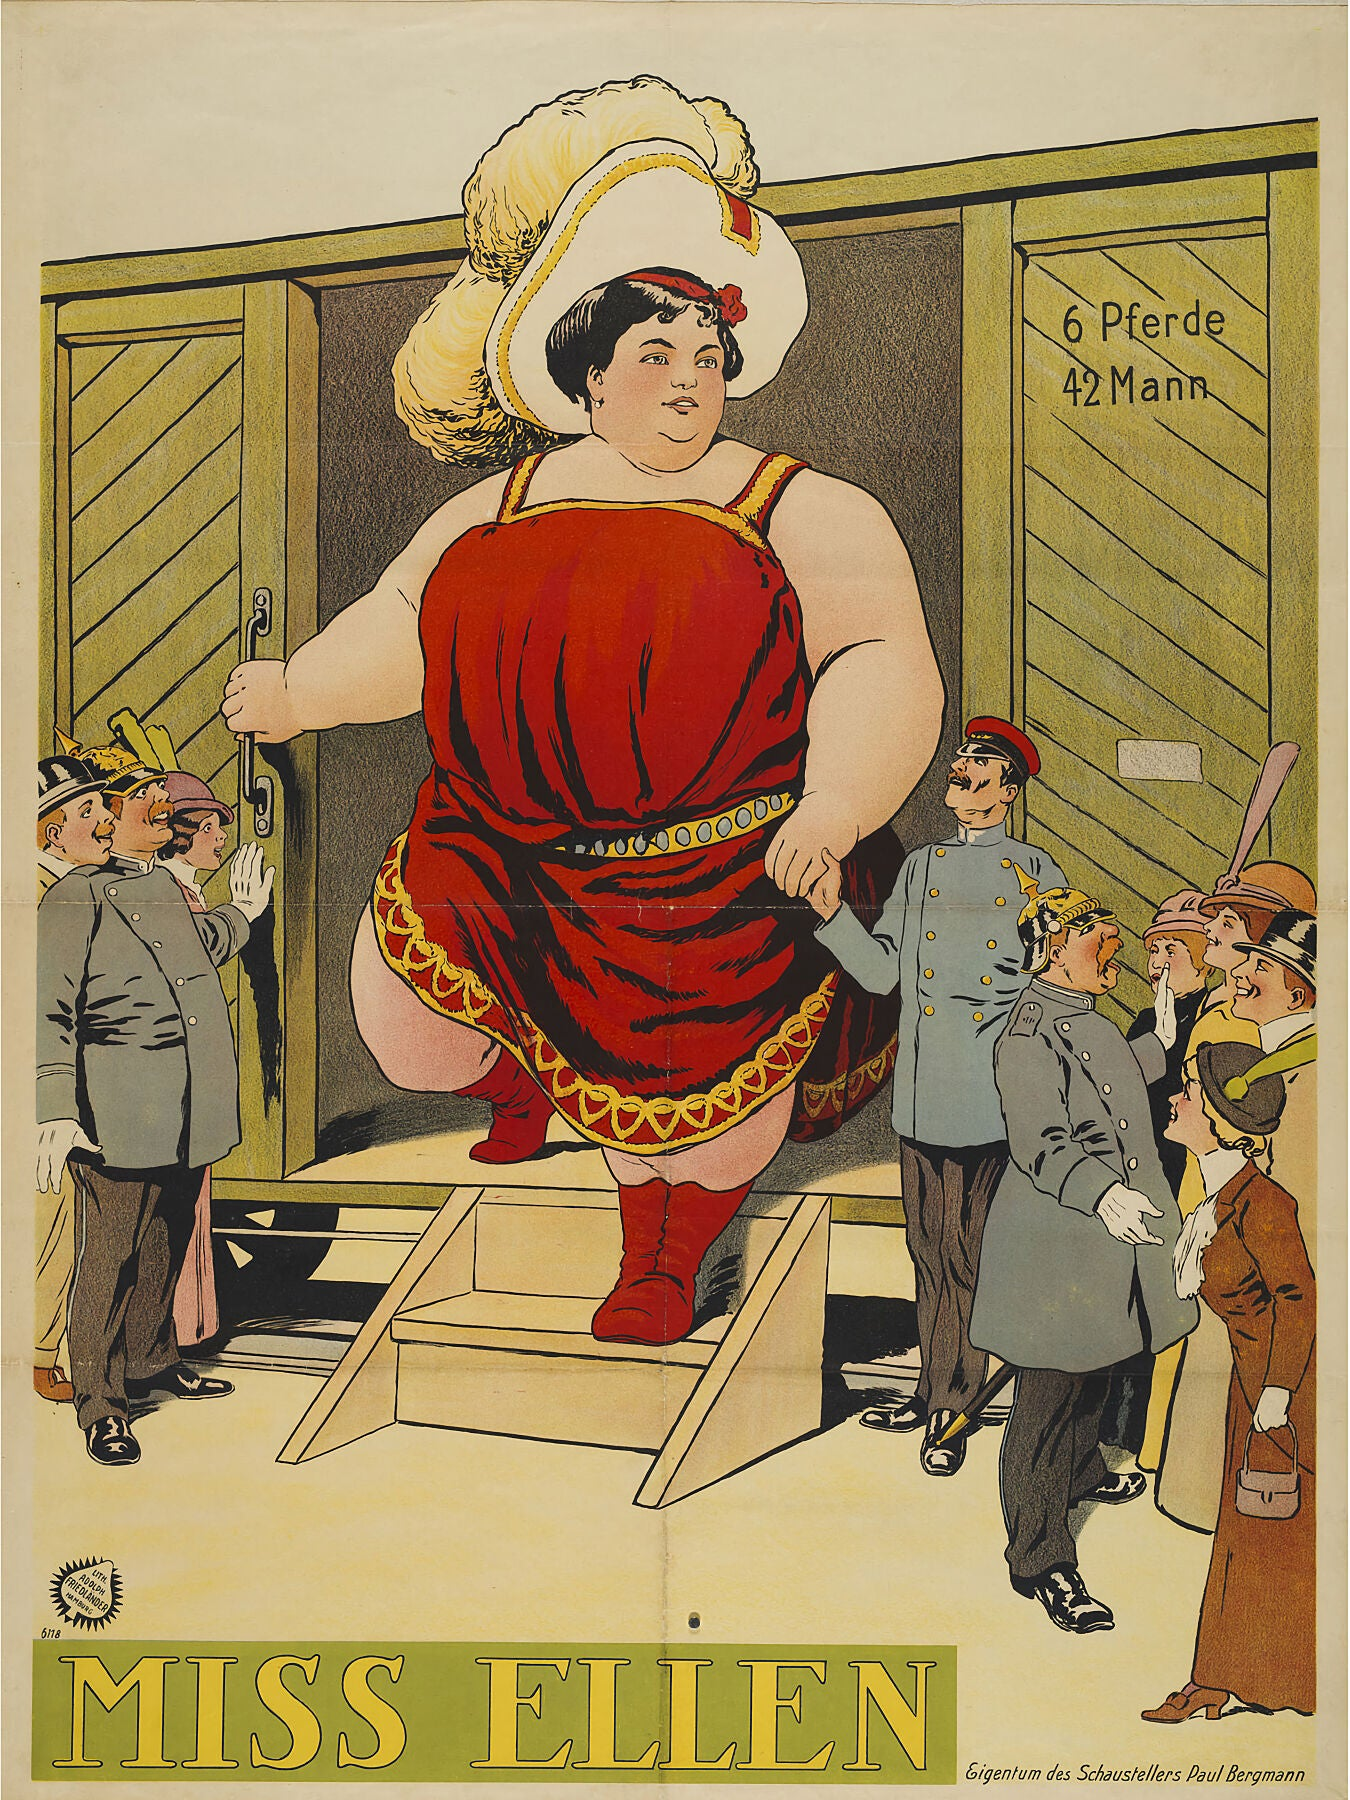 "Miss Ellen - Property of the showman Paul Bergmann by Adolph Friedländer. The door of which is labeled ""6 horses 42 men""."